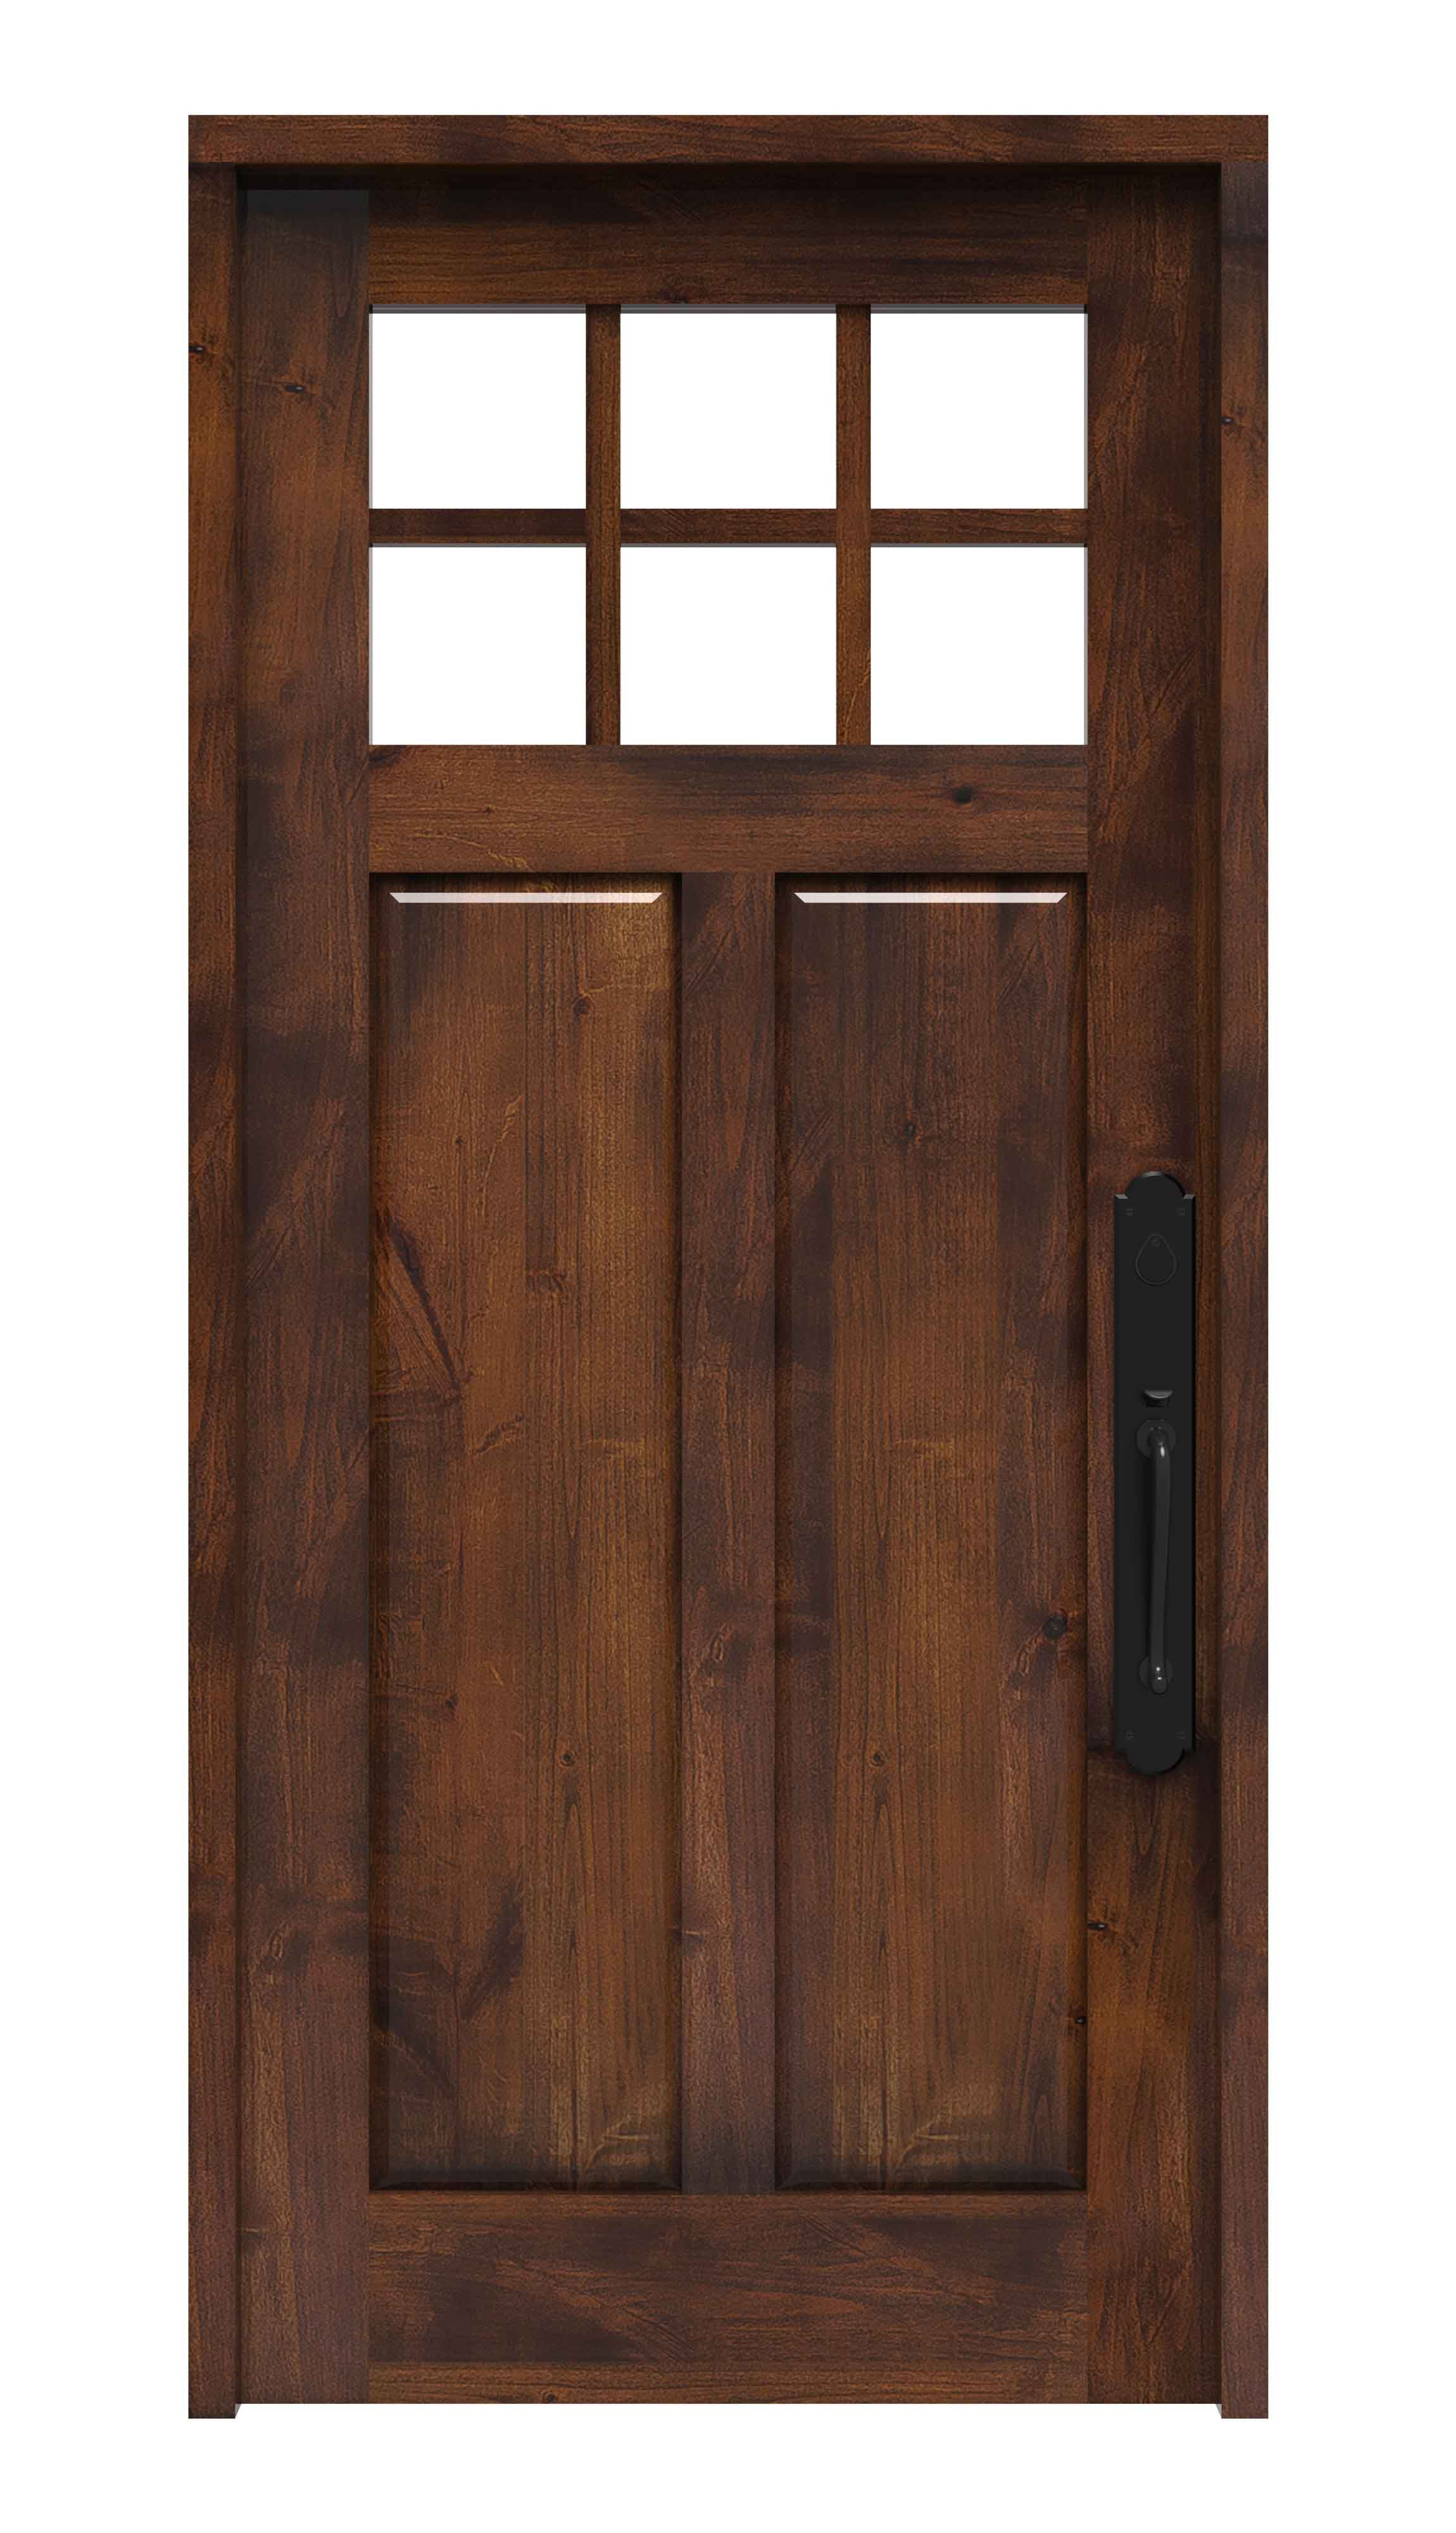 Shop Our New Shaker Front Door That Features A Balance Of Double Paned Tempered Glass And Solid Wood For A Custom Front Doors Exterior Doors Front Entry Doors